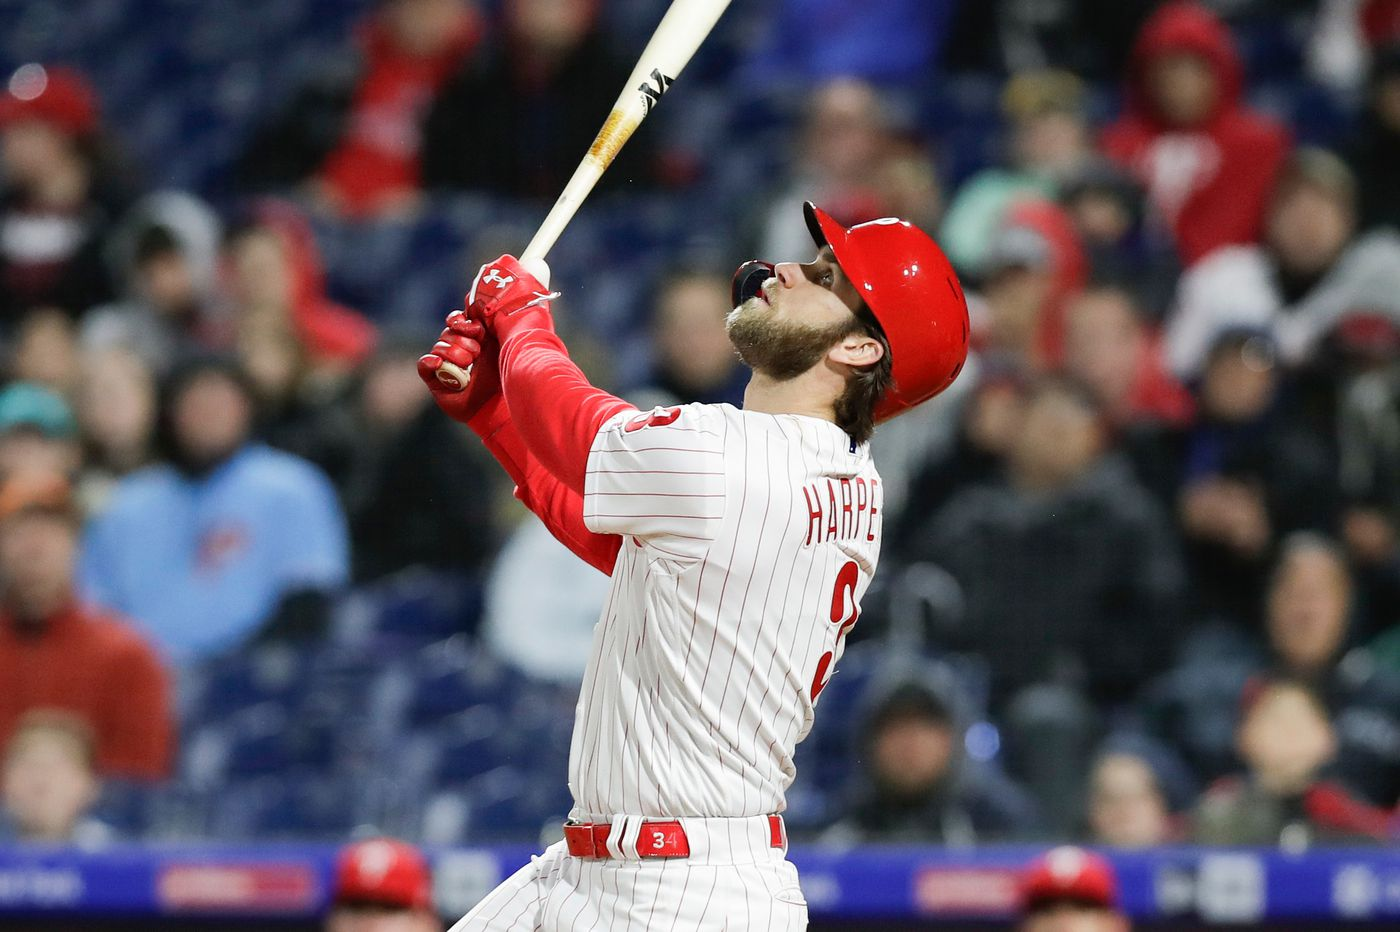 Phillies move Bryce Harper to No. 2 in batting order vs. Brewers to try to snap his funk